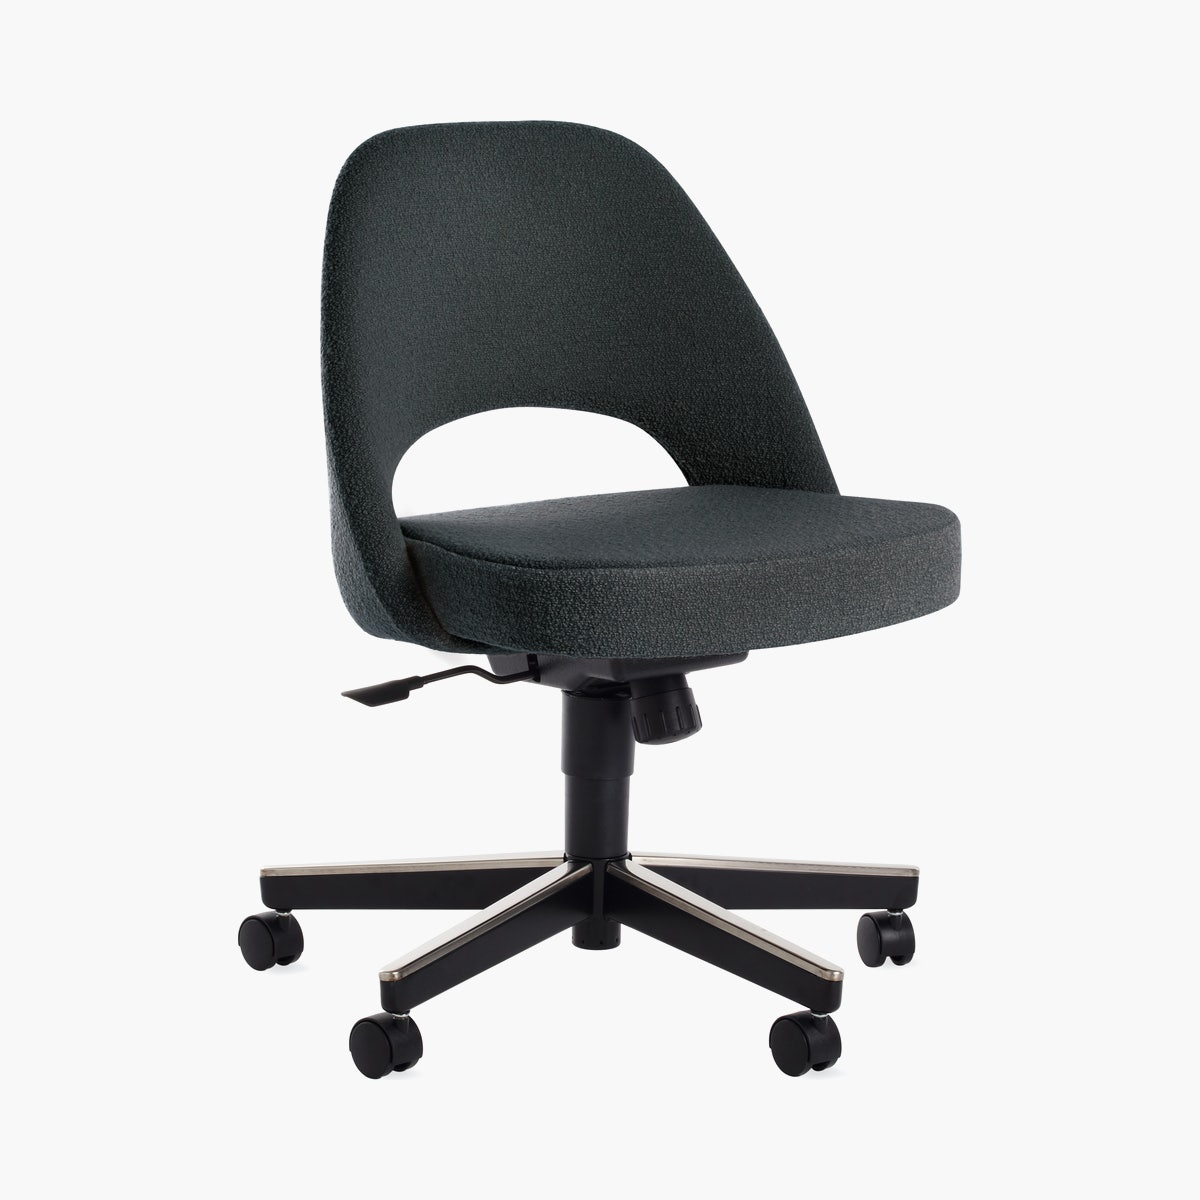 Saarinen Executive Office Chair